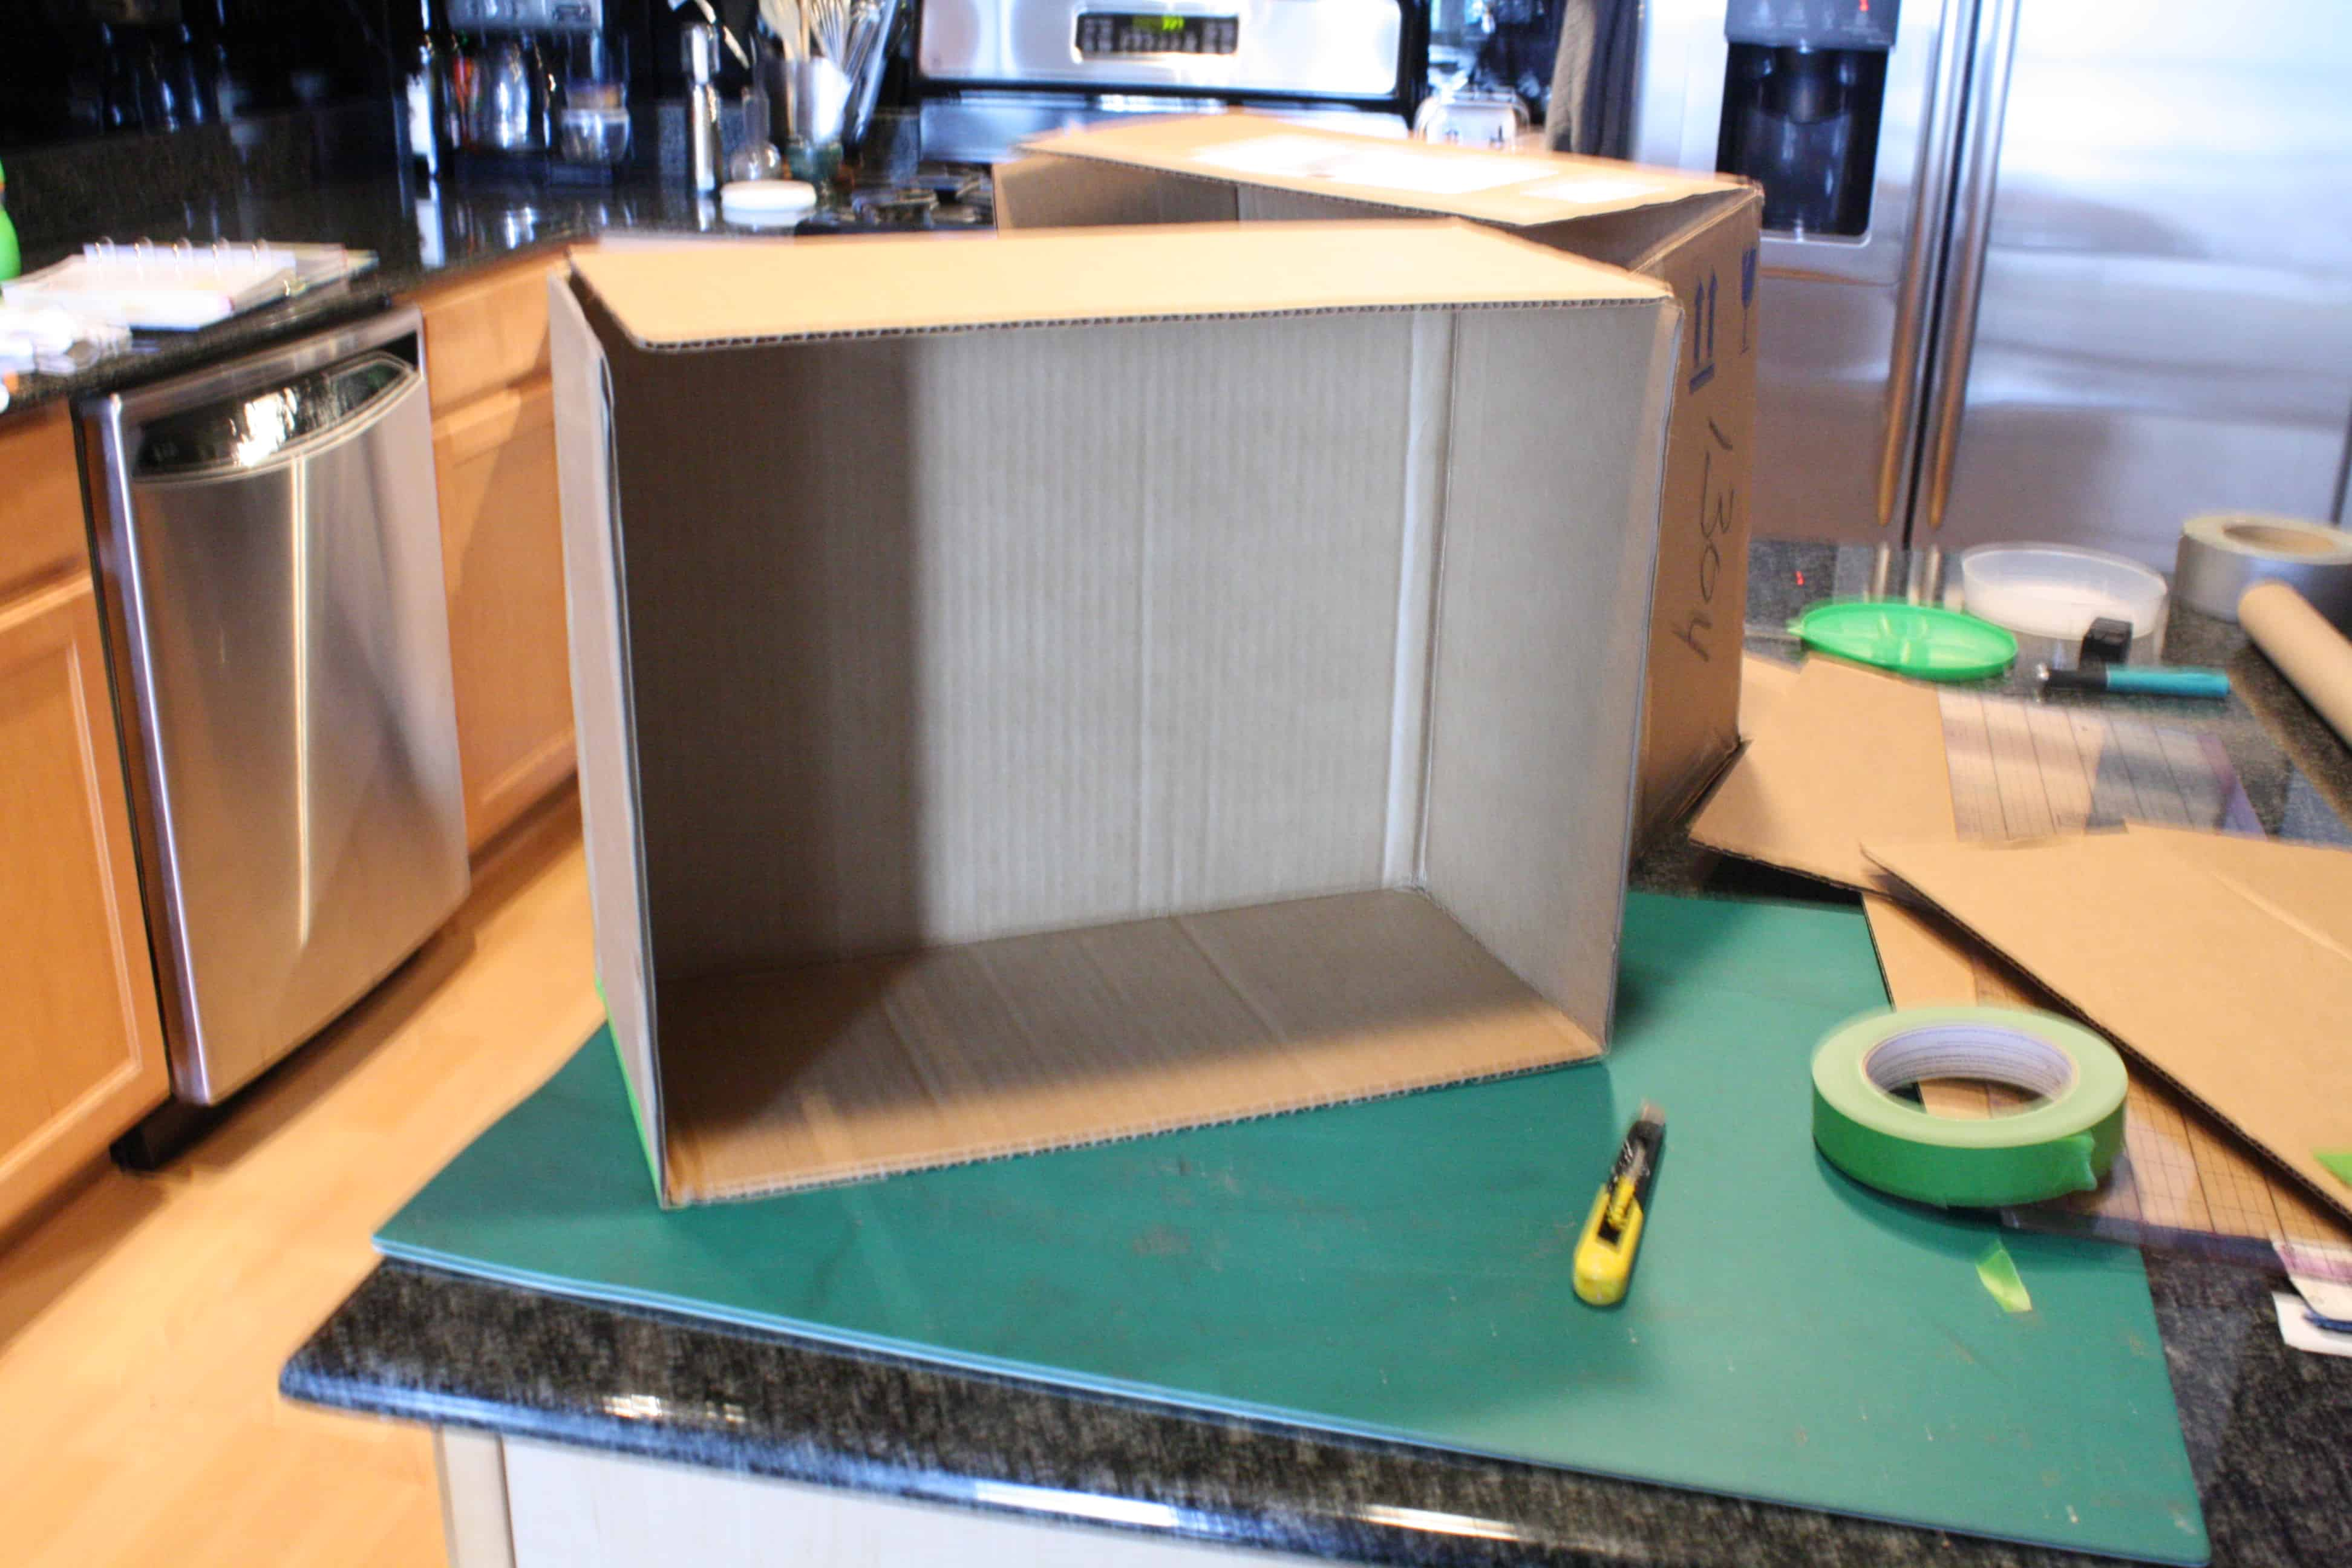 doll furniture recycled materials. Recycled Cardboard Box For DIY Doll House By Little Red Window Furniture Materials